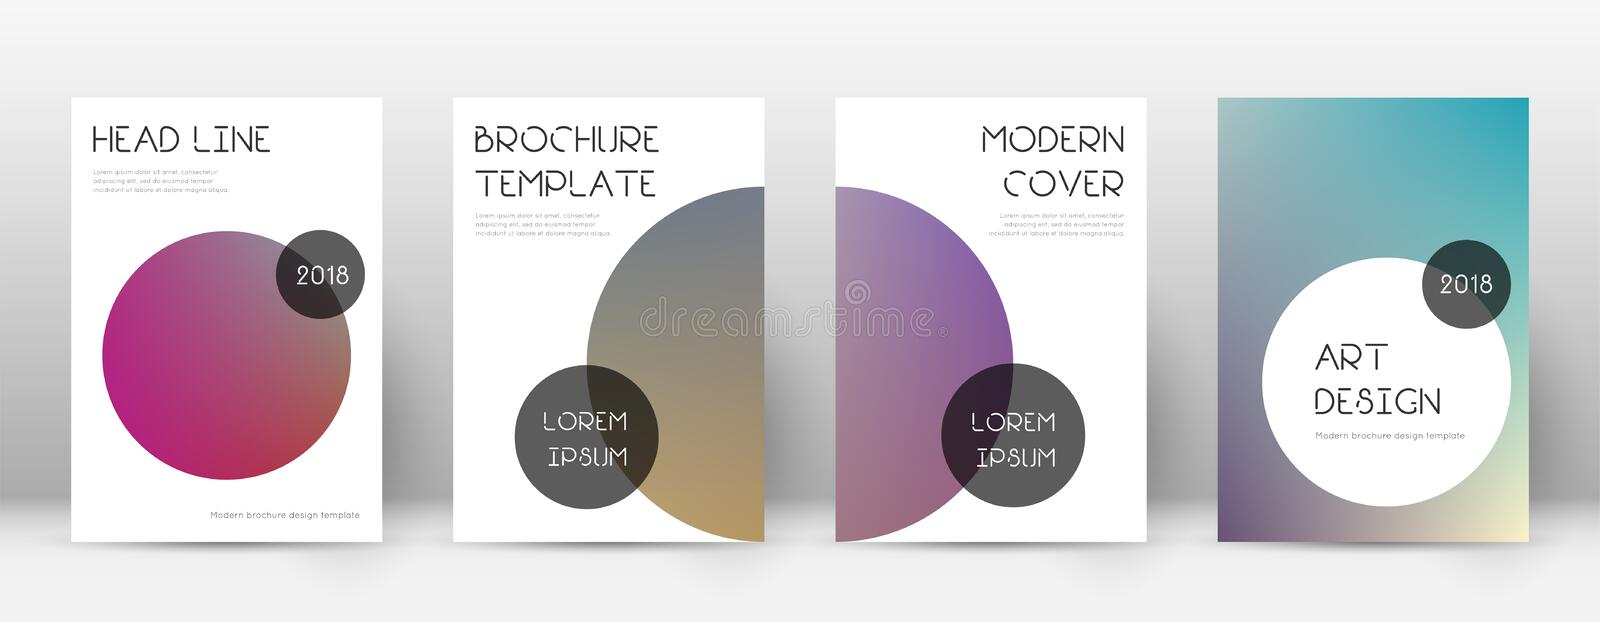 Flyer layout. Trendy trending template for Brochure, Annual Report, Magazine, Poster, Corporate Presentation, Portfolio, Flyer. Beauteous gradient cover page royalty free illustration